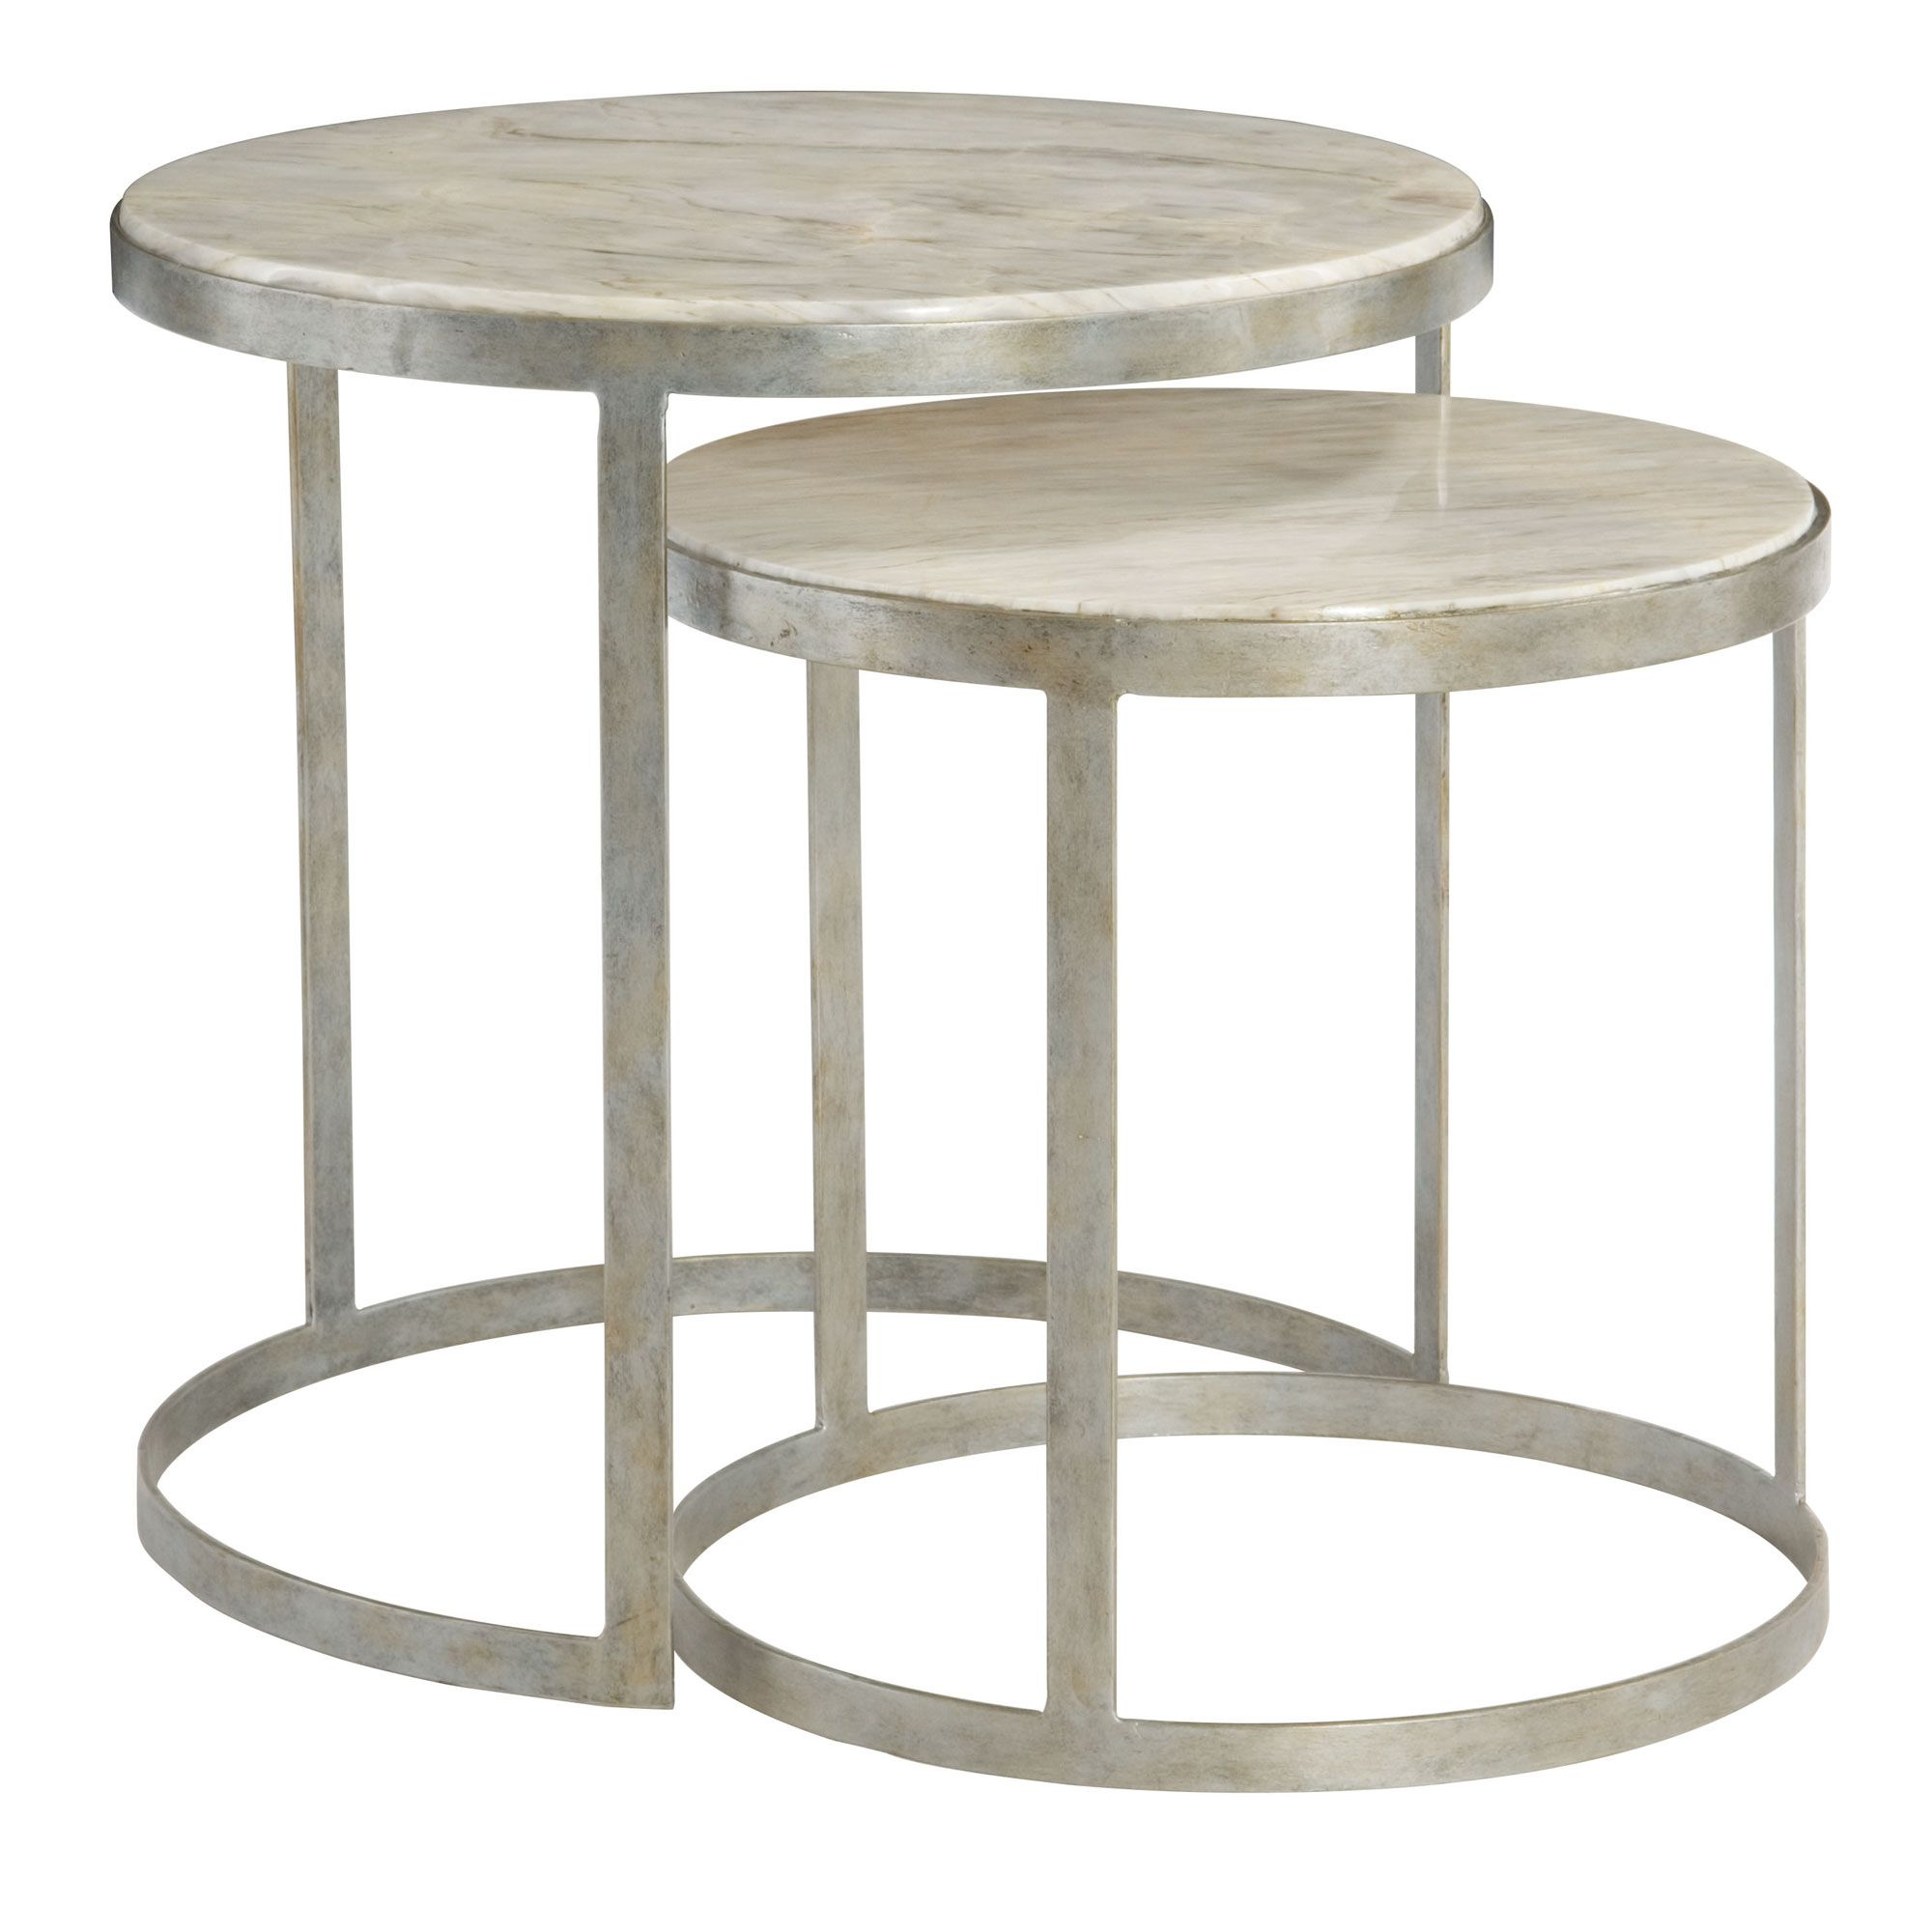 362 031 Tiffin Nesting Tables | Bernhardt Round Dia 24.5 H 24 Century  Marble Top